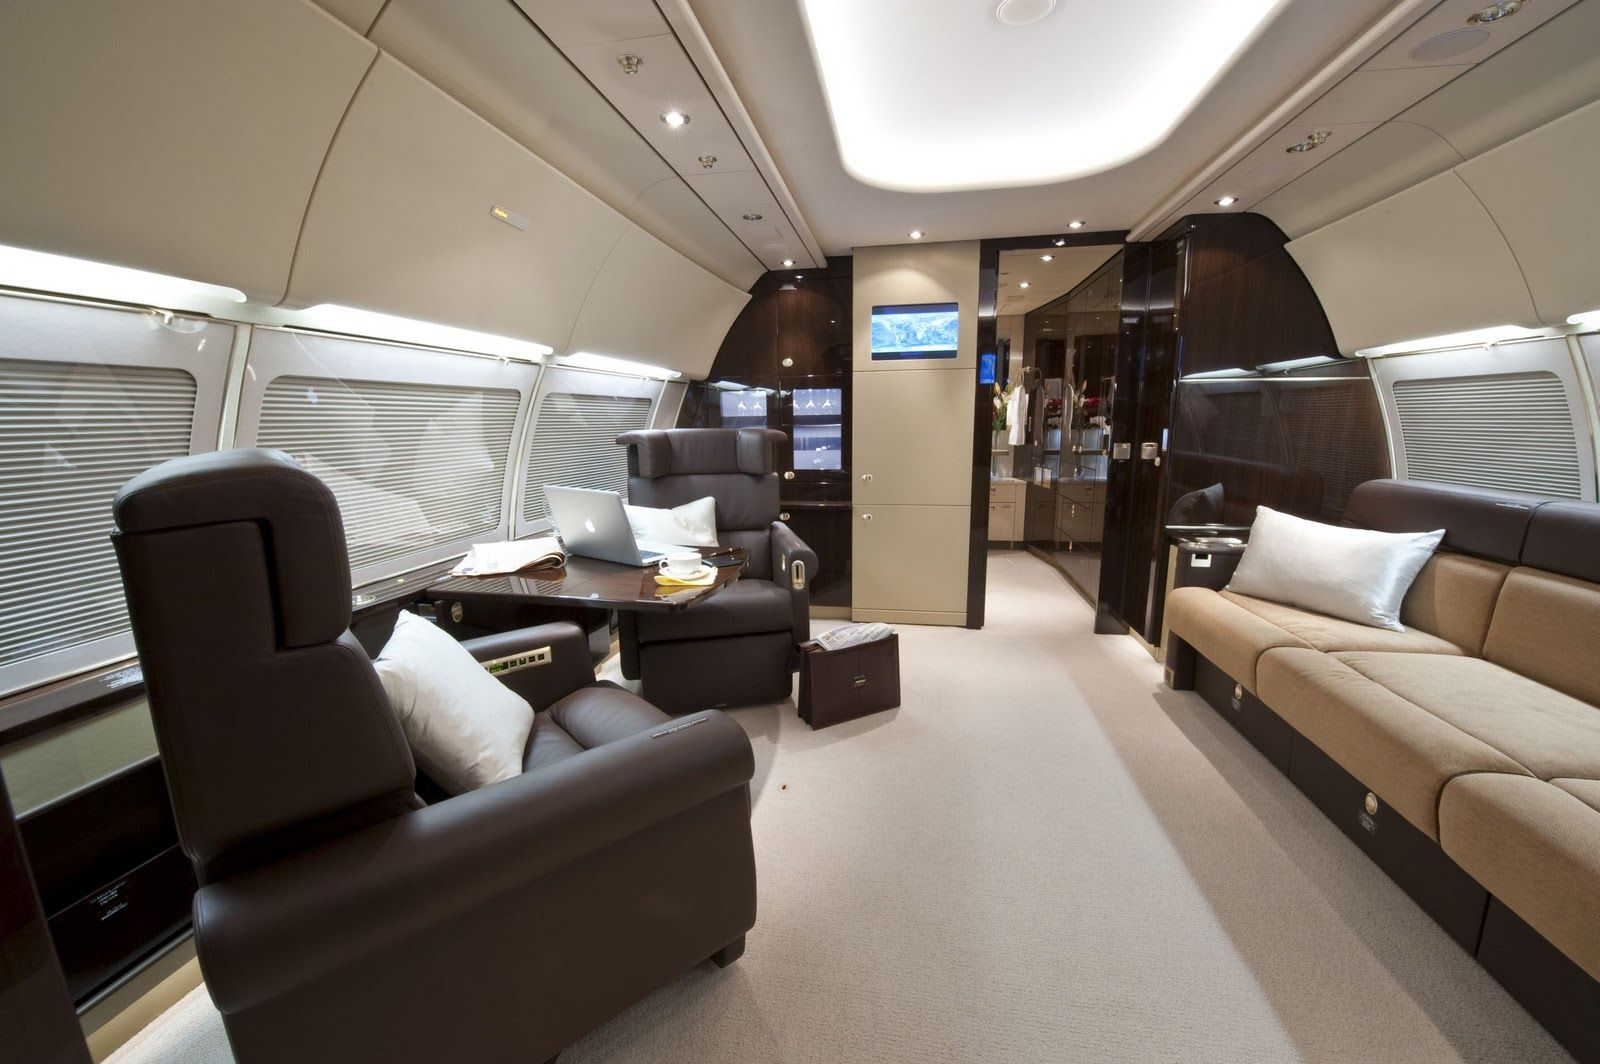 Private jet interior furnished like a vintage train aviation - Inside My Private Jet Dreambig